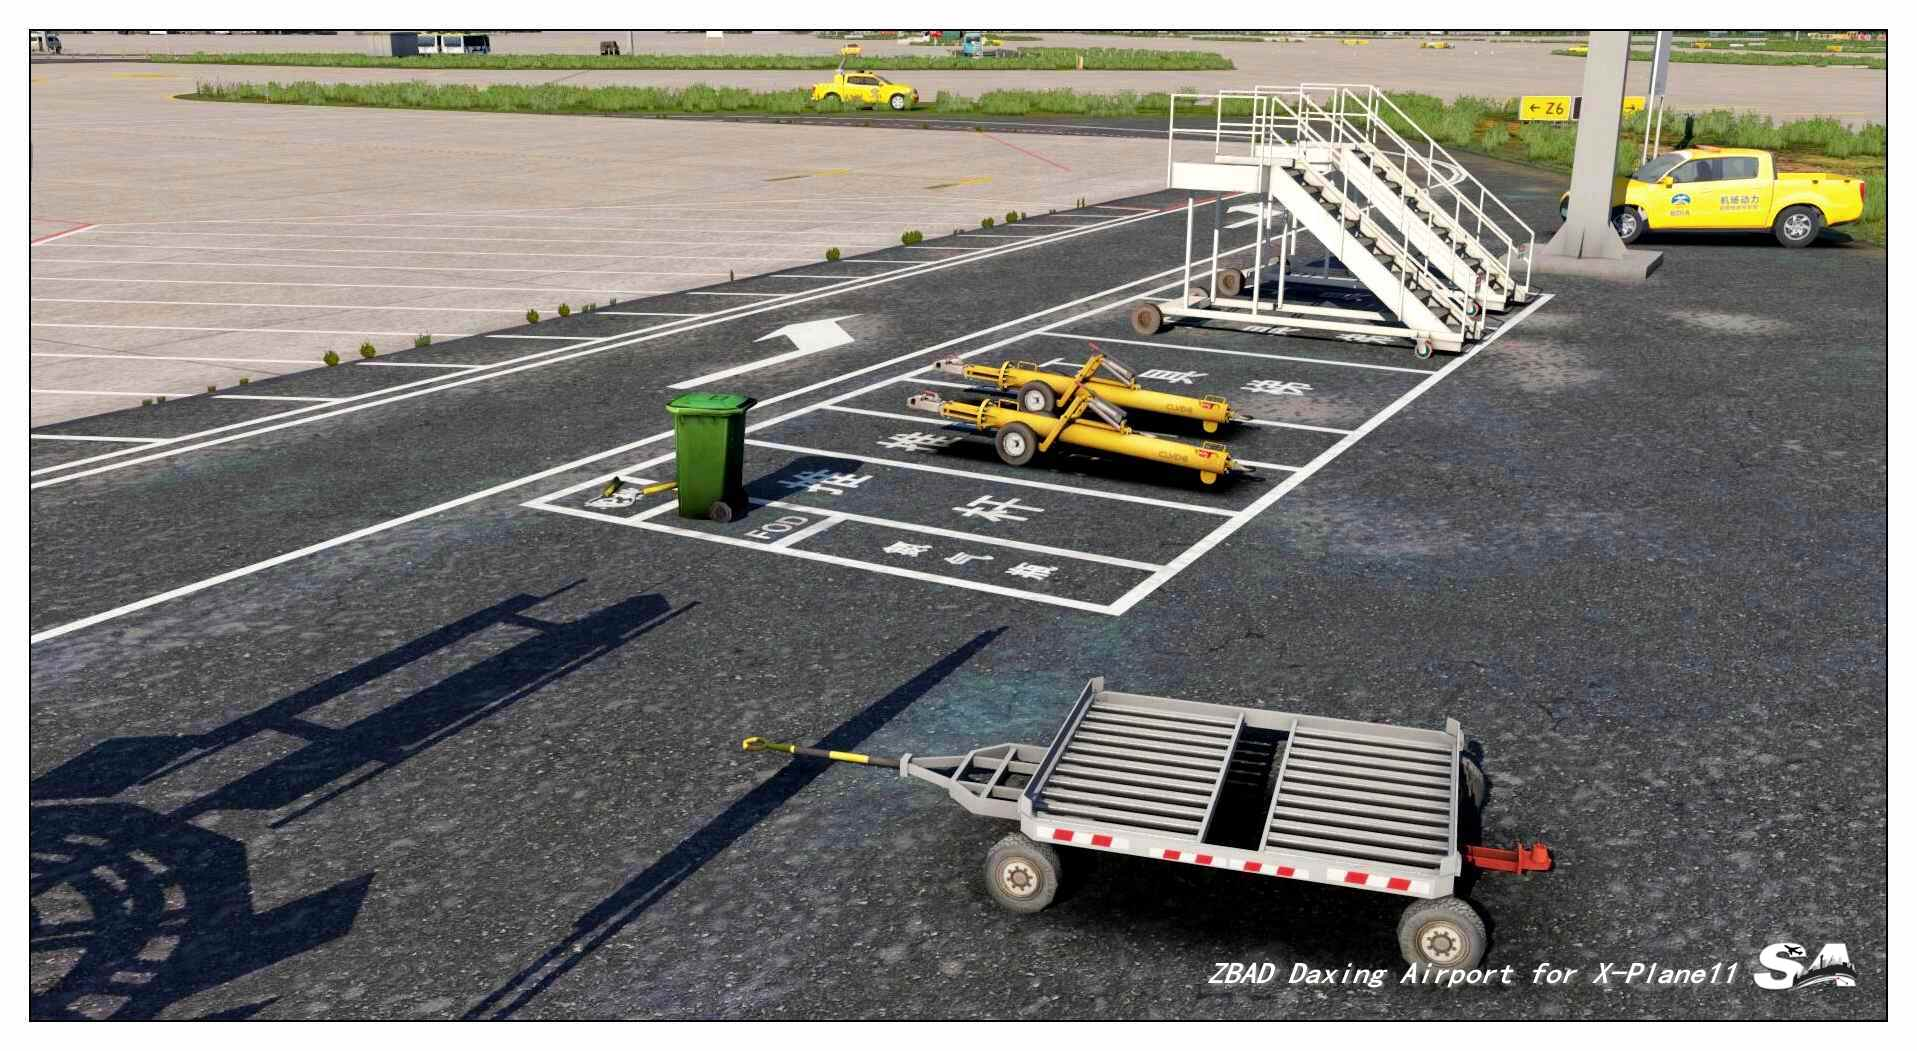 STAR_ATLAS - FLUGHAFEN PEKING-DAXING X-PLANE 10/11